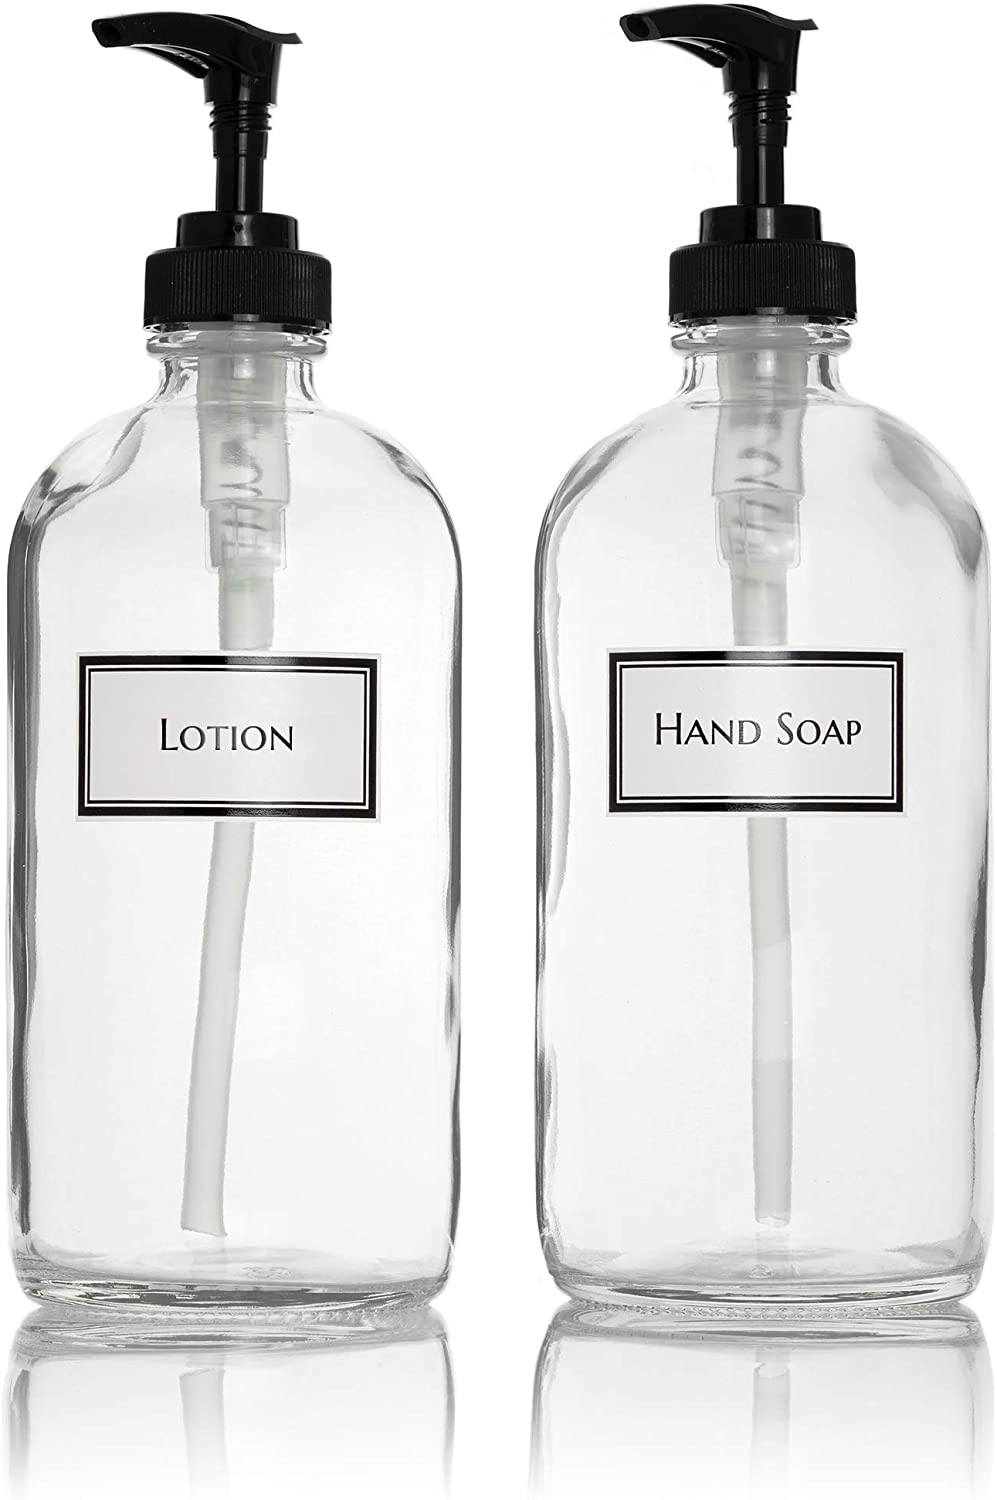 Ceramic Printed Glass Hand Soap and Lotion Dispenser Set with Black Pumps, 16 oz, Clear